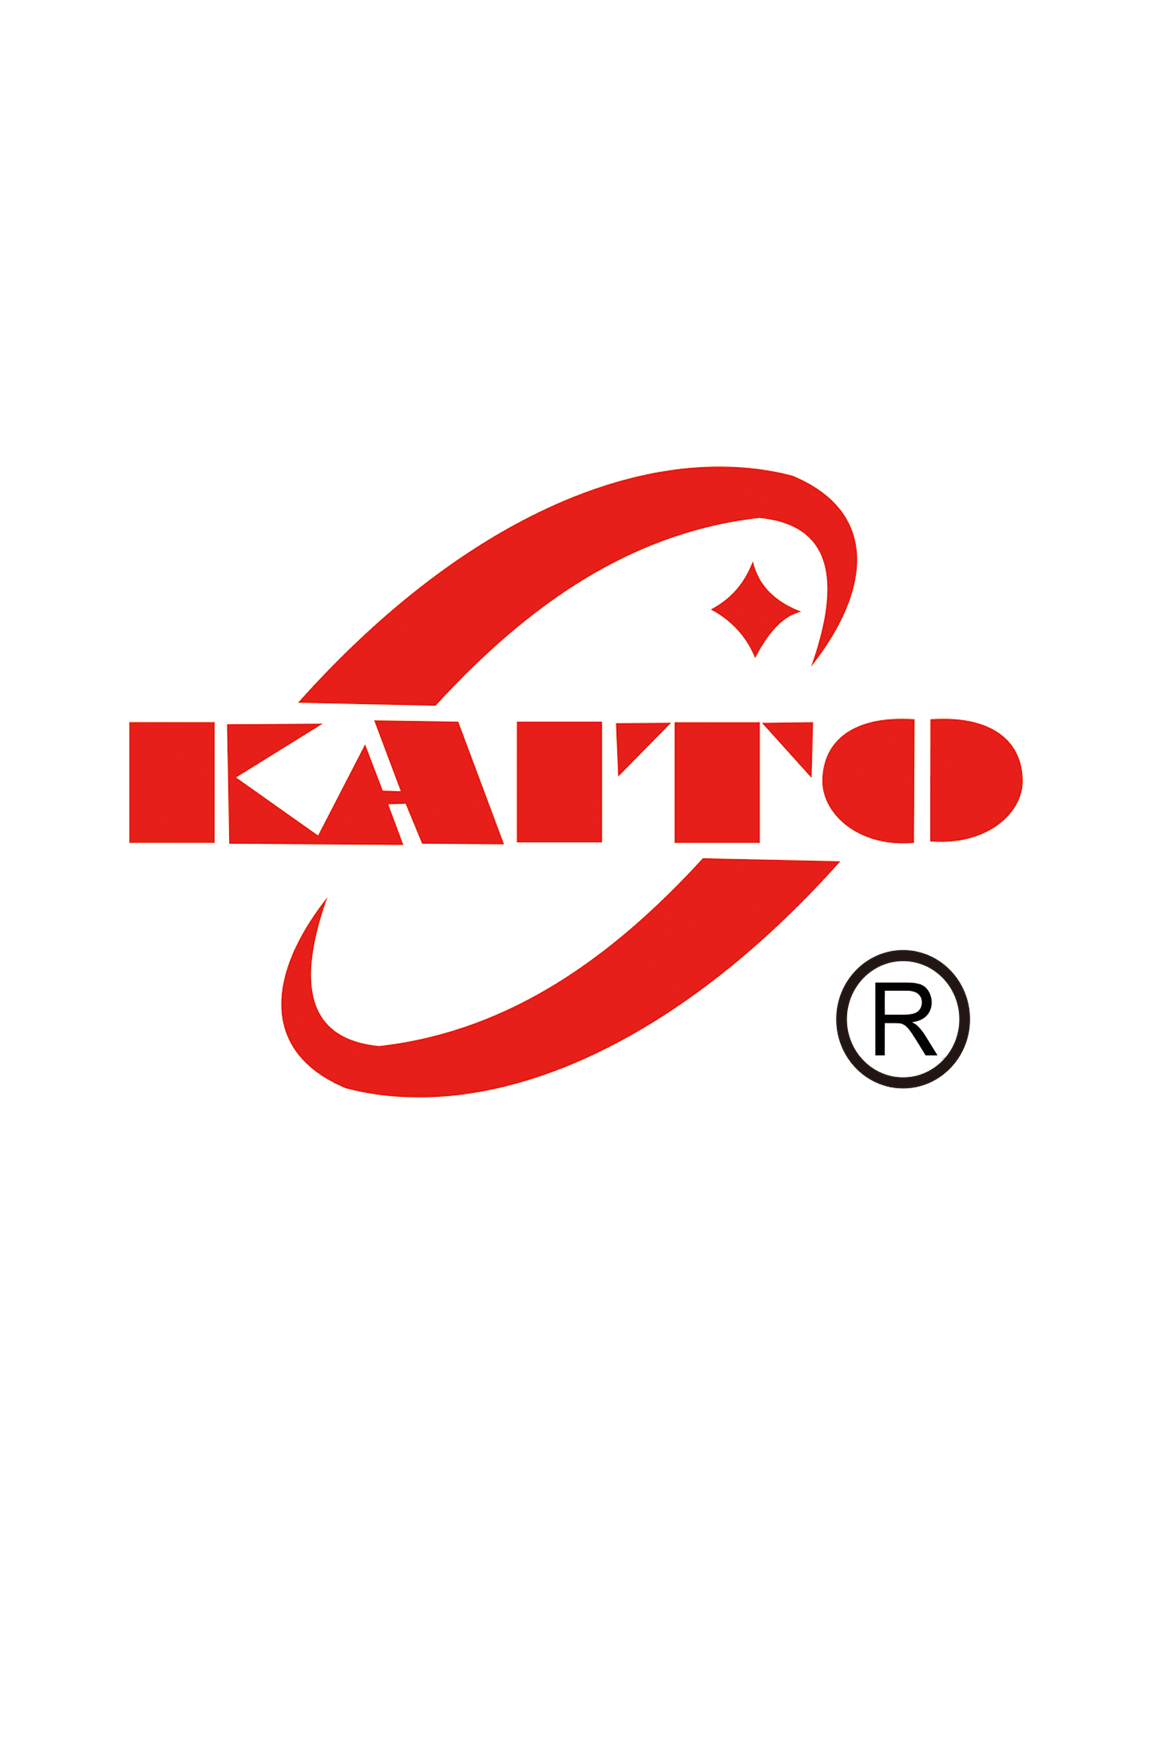 changzhou changchai group kaito electricity machinery co., ltd